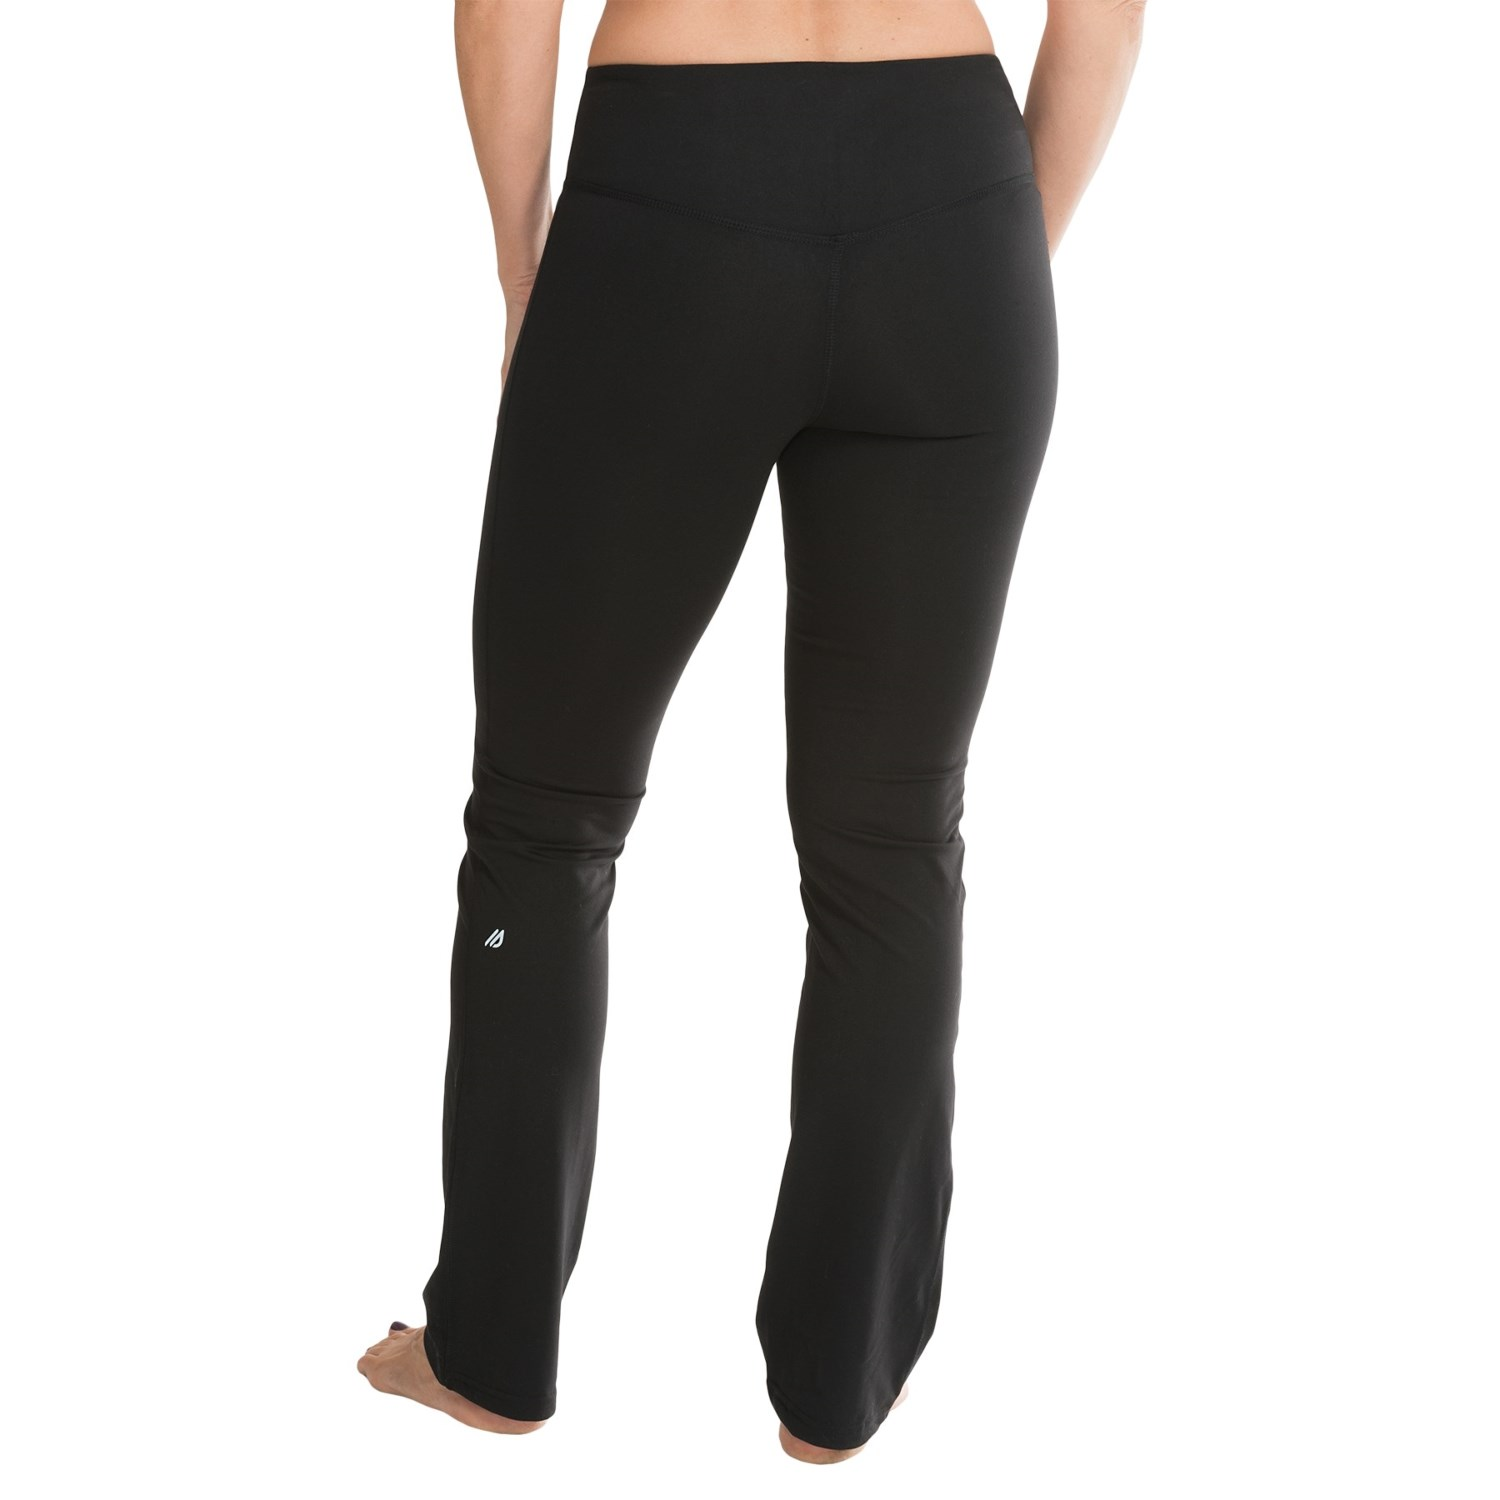 Free shipping & returns on women's active, workout, yoga & outdoor clothing at hereuloadu5.ga Find a great selection of workout, activewear & yoga clothes from Nike, Adidas, Zella & .